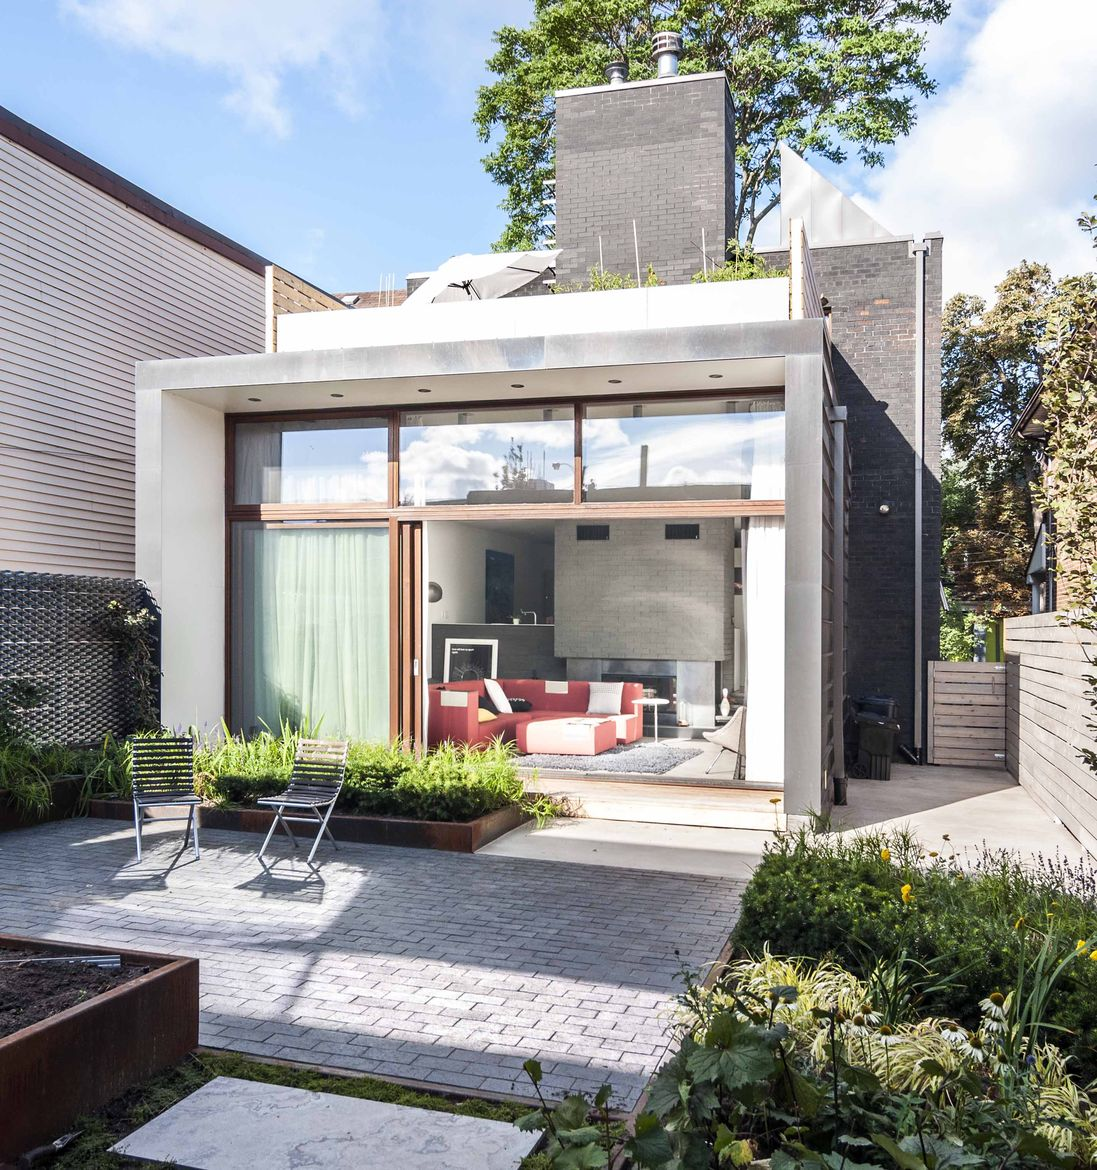 New Toronto addition with garden and roof terrace